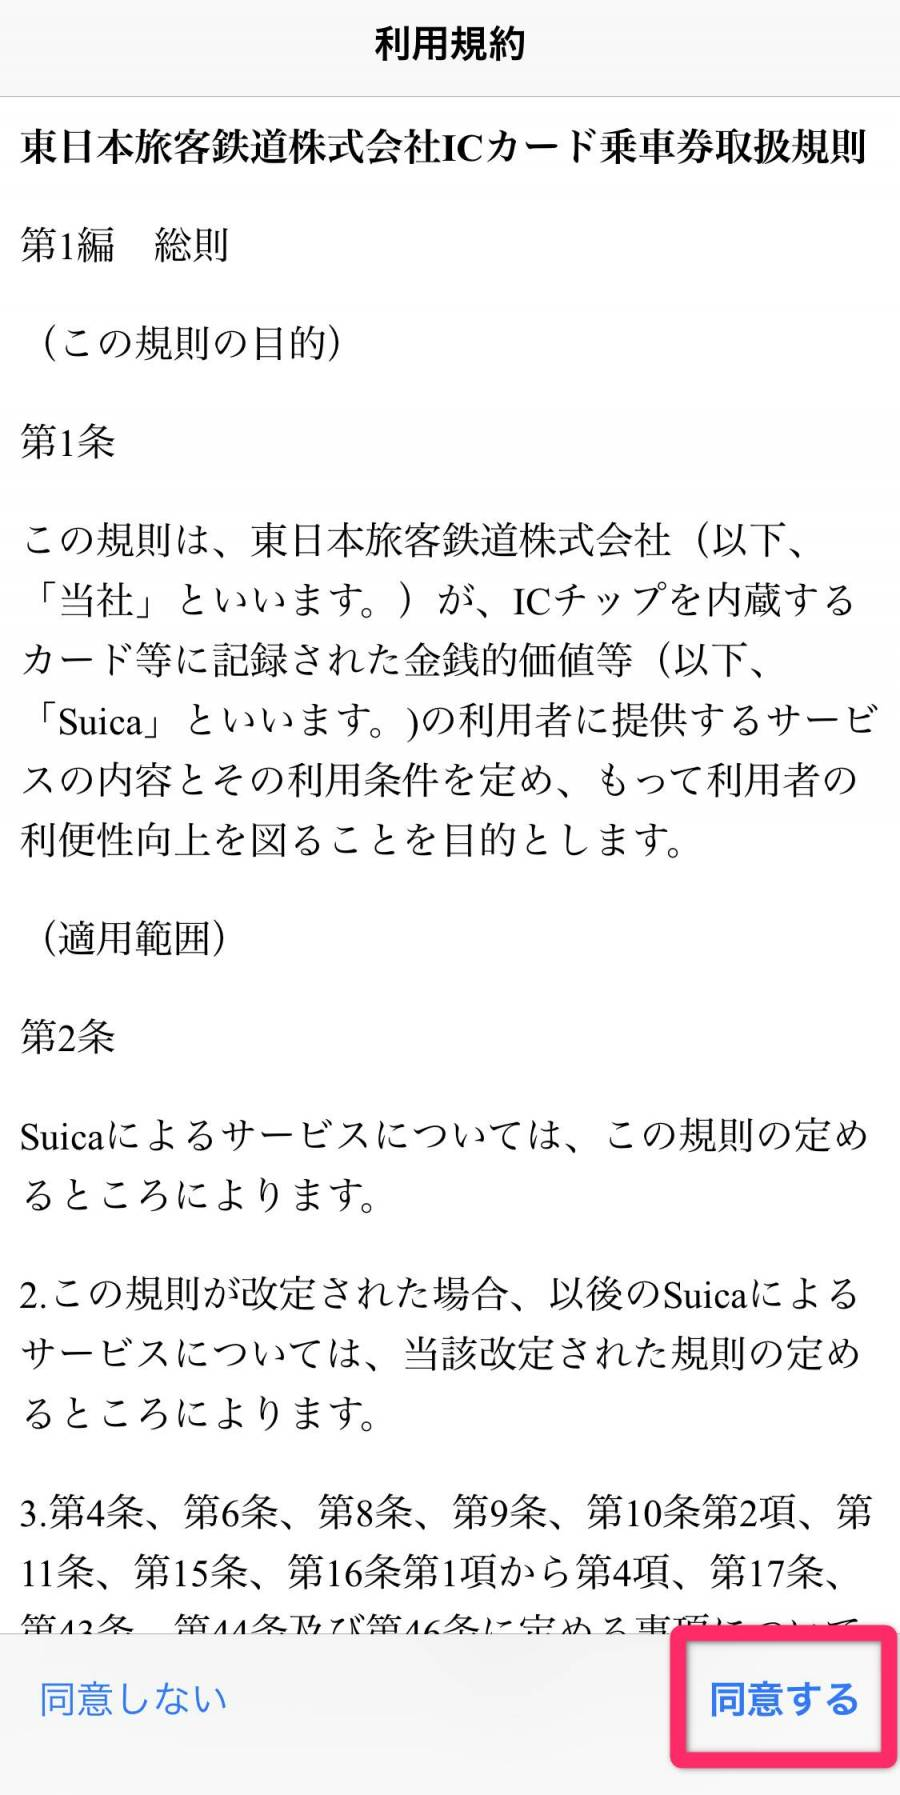 Apple Pay Suica利用規約